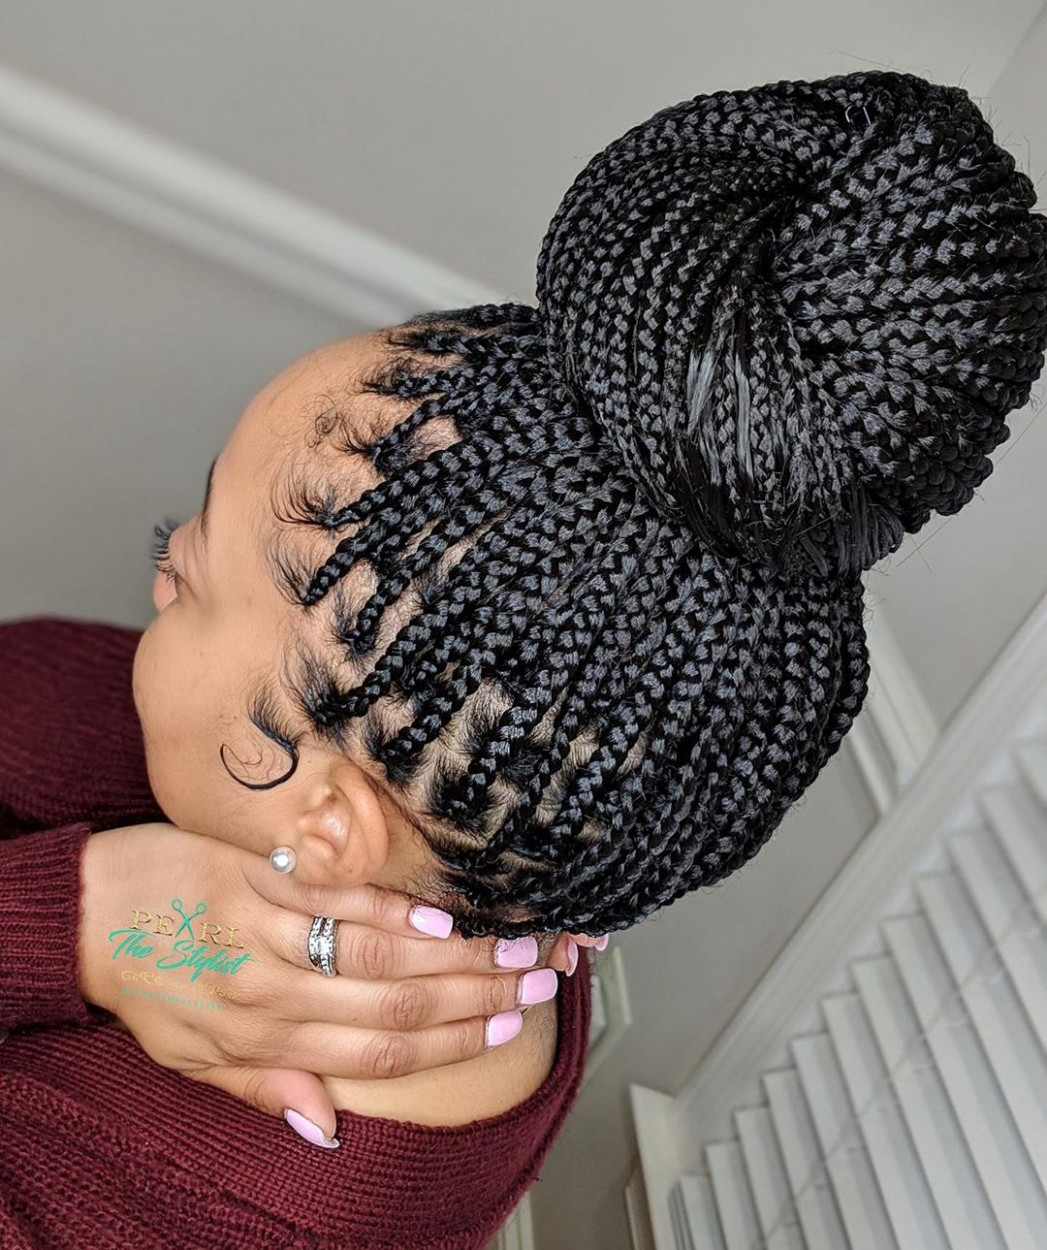 12 Jaw-Dropping Braided Hairstyles to Try in 12 - Hair Adviser